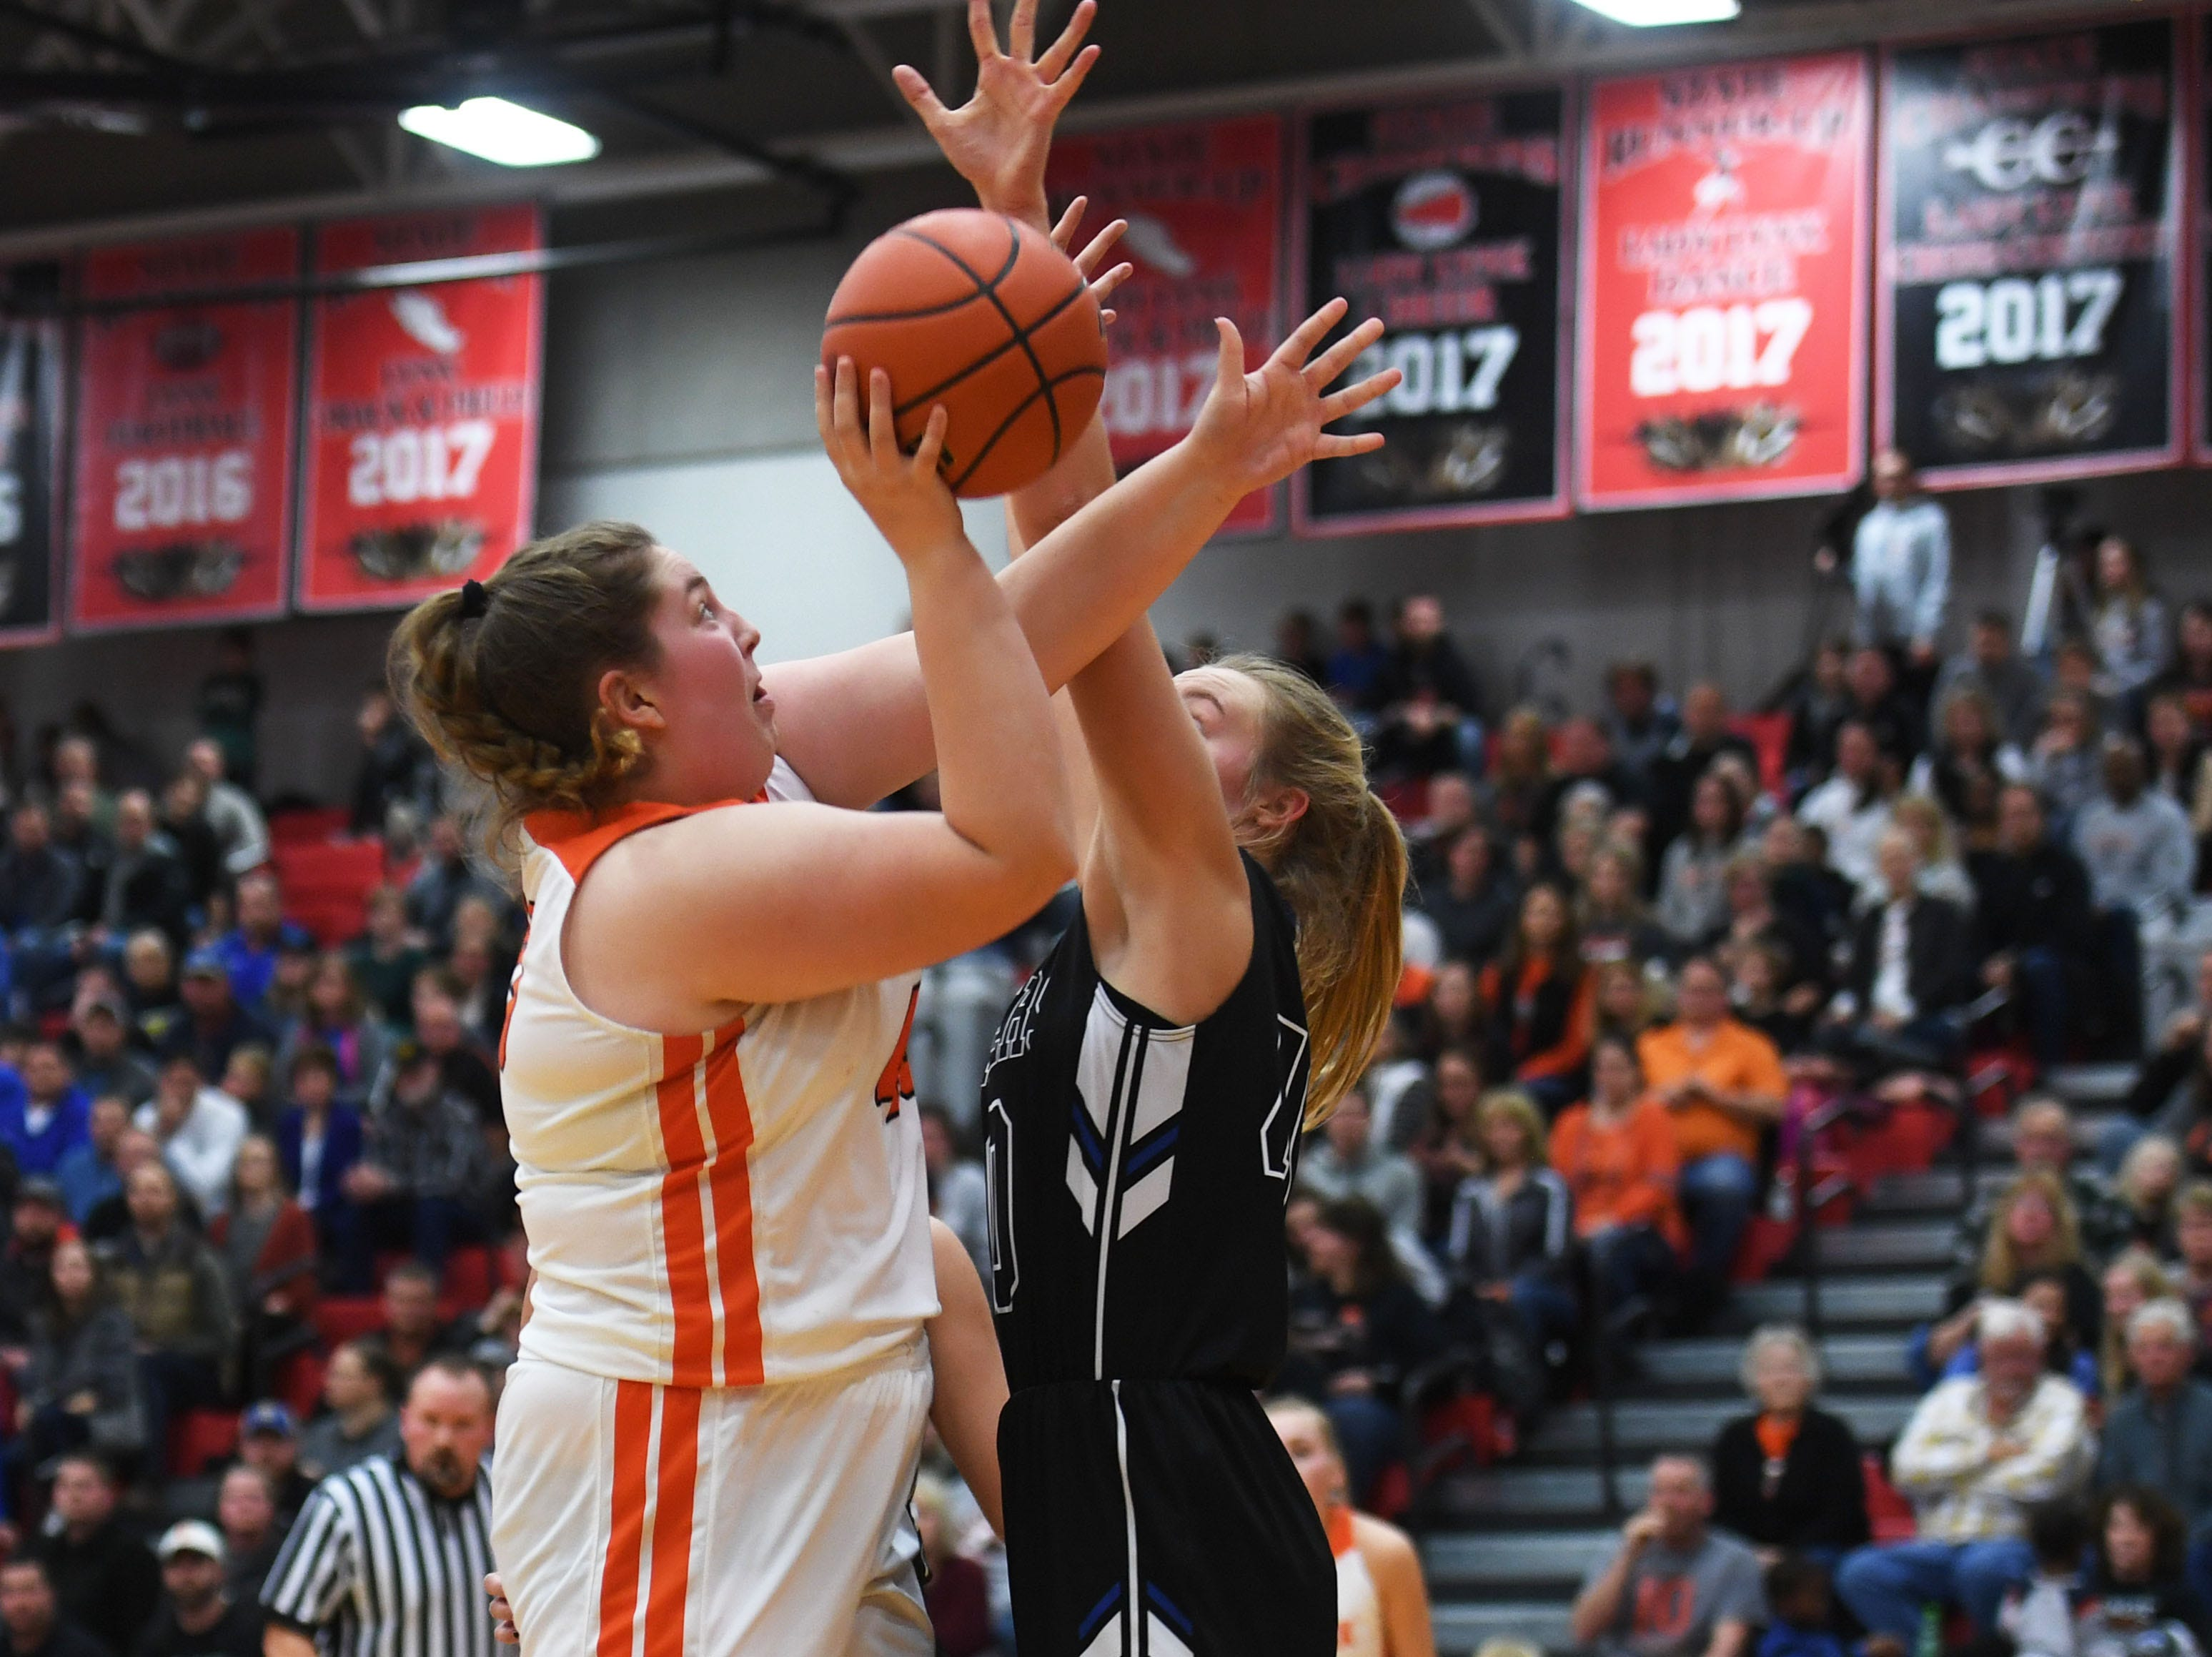 Lennox's Leslie Fillipi takes a shot against Sioux Falls Christian defense during the game Thursday, March 7, at Brandon Valley High School in Brandon Valley.